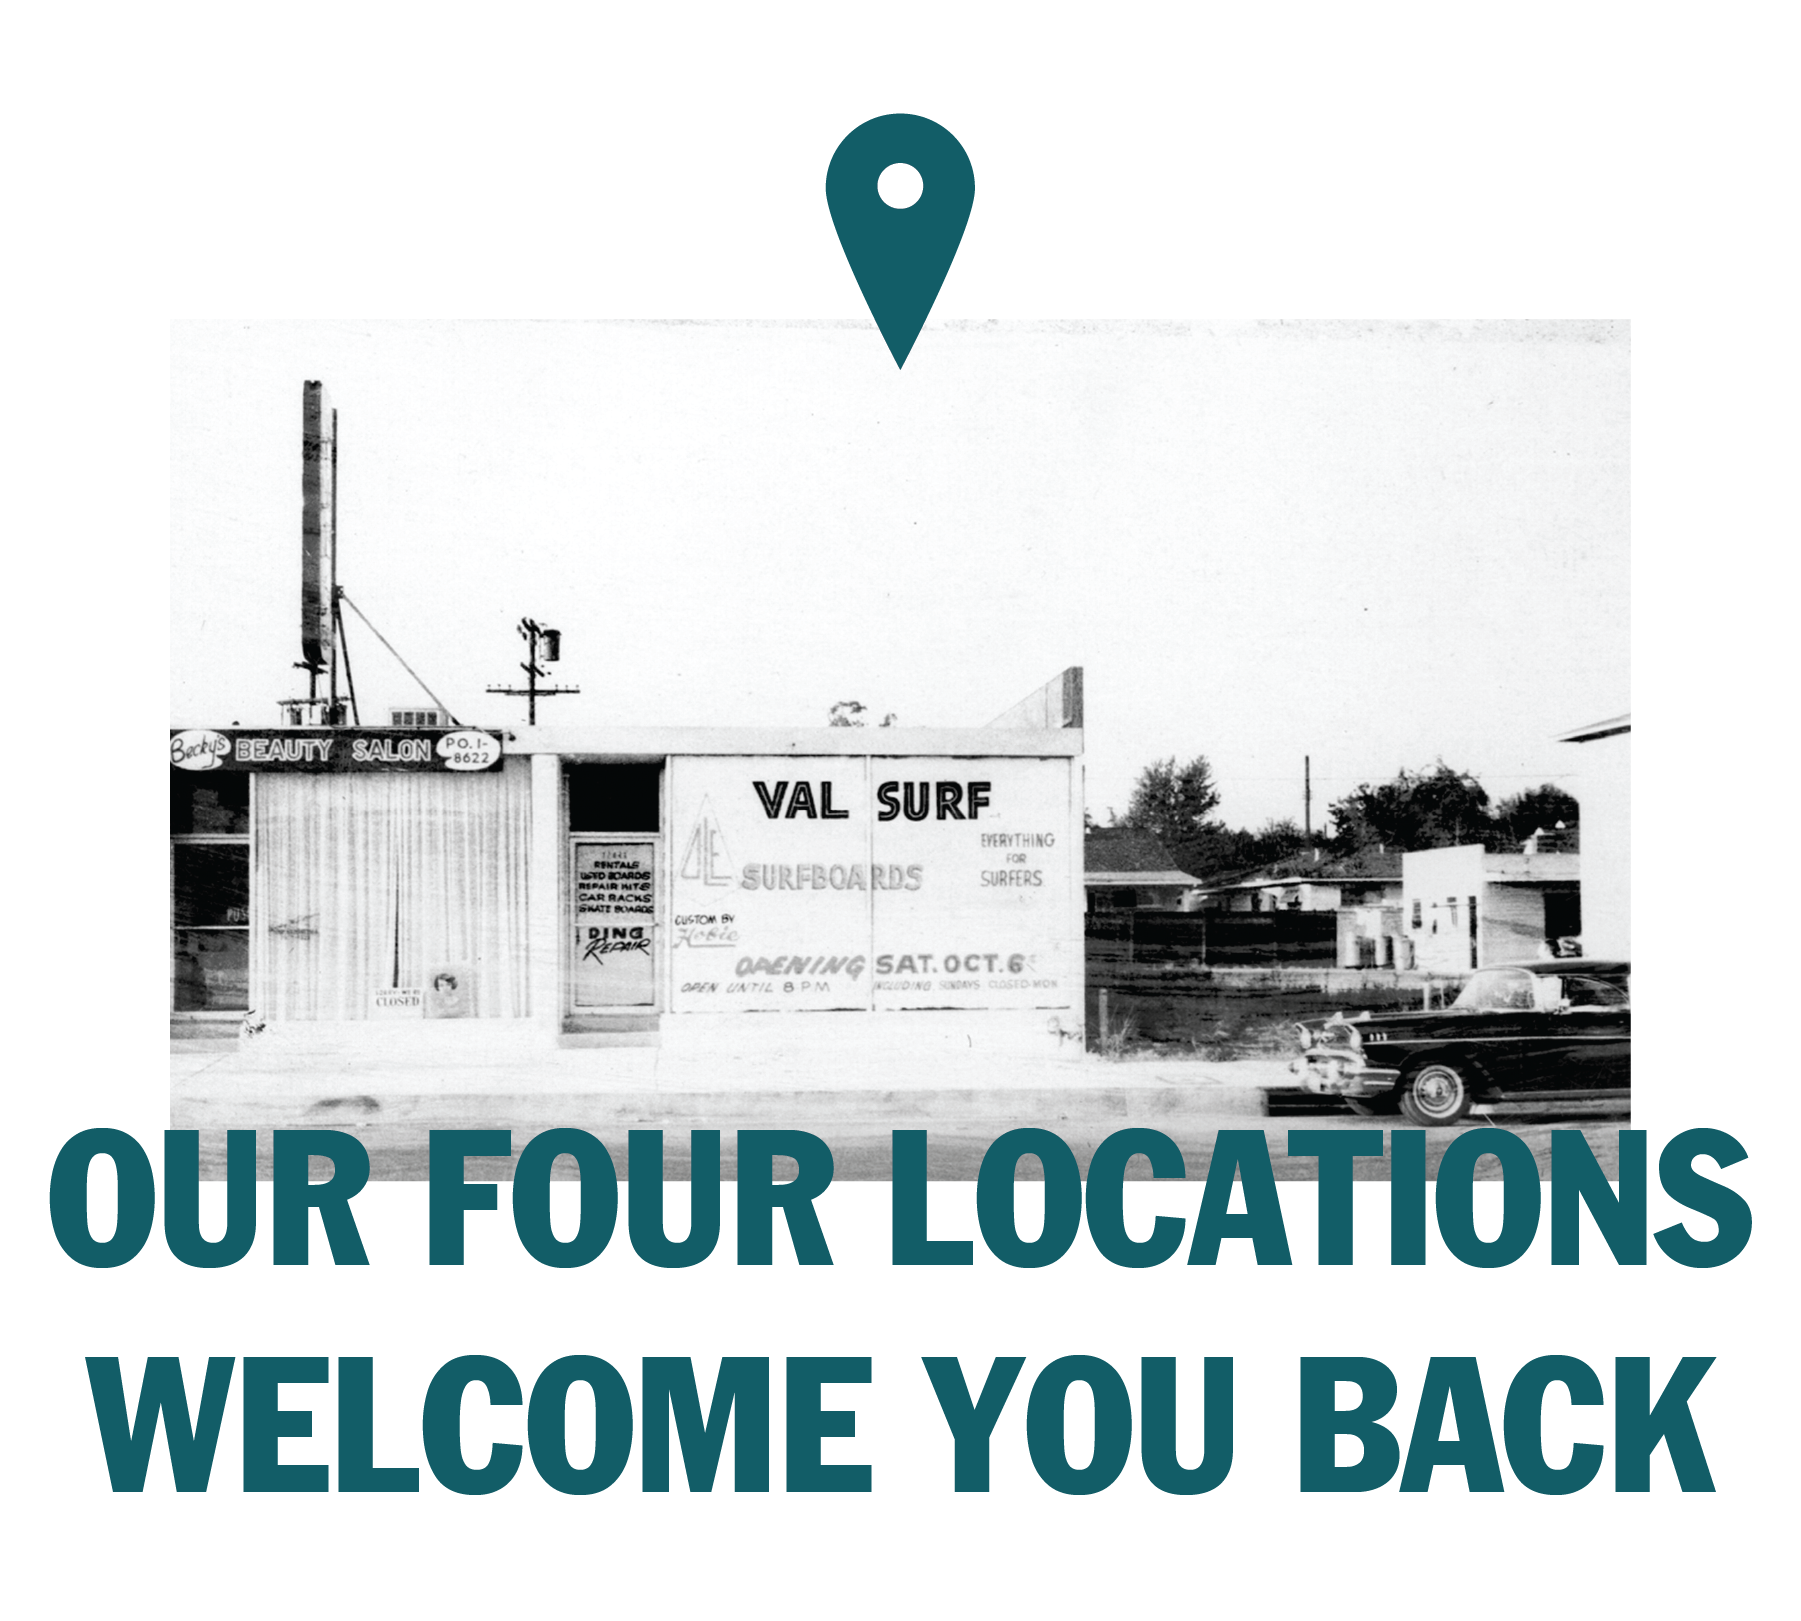 our four locations welcome you back - vintage photo of val surf store front